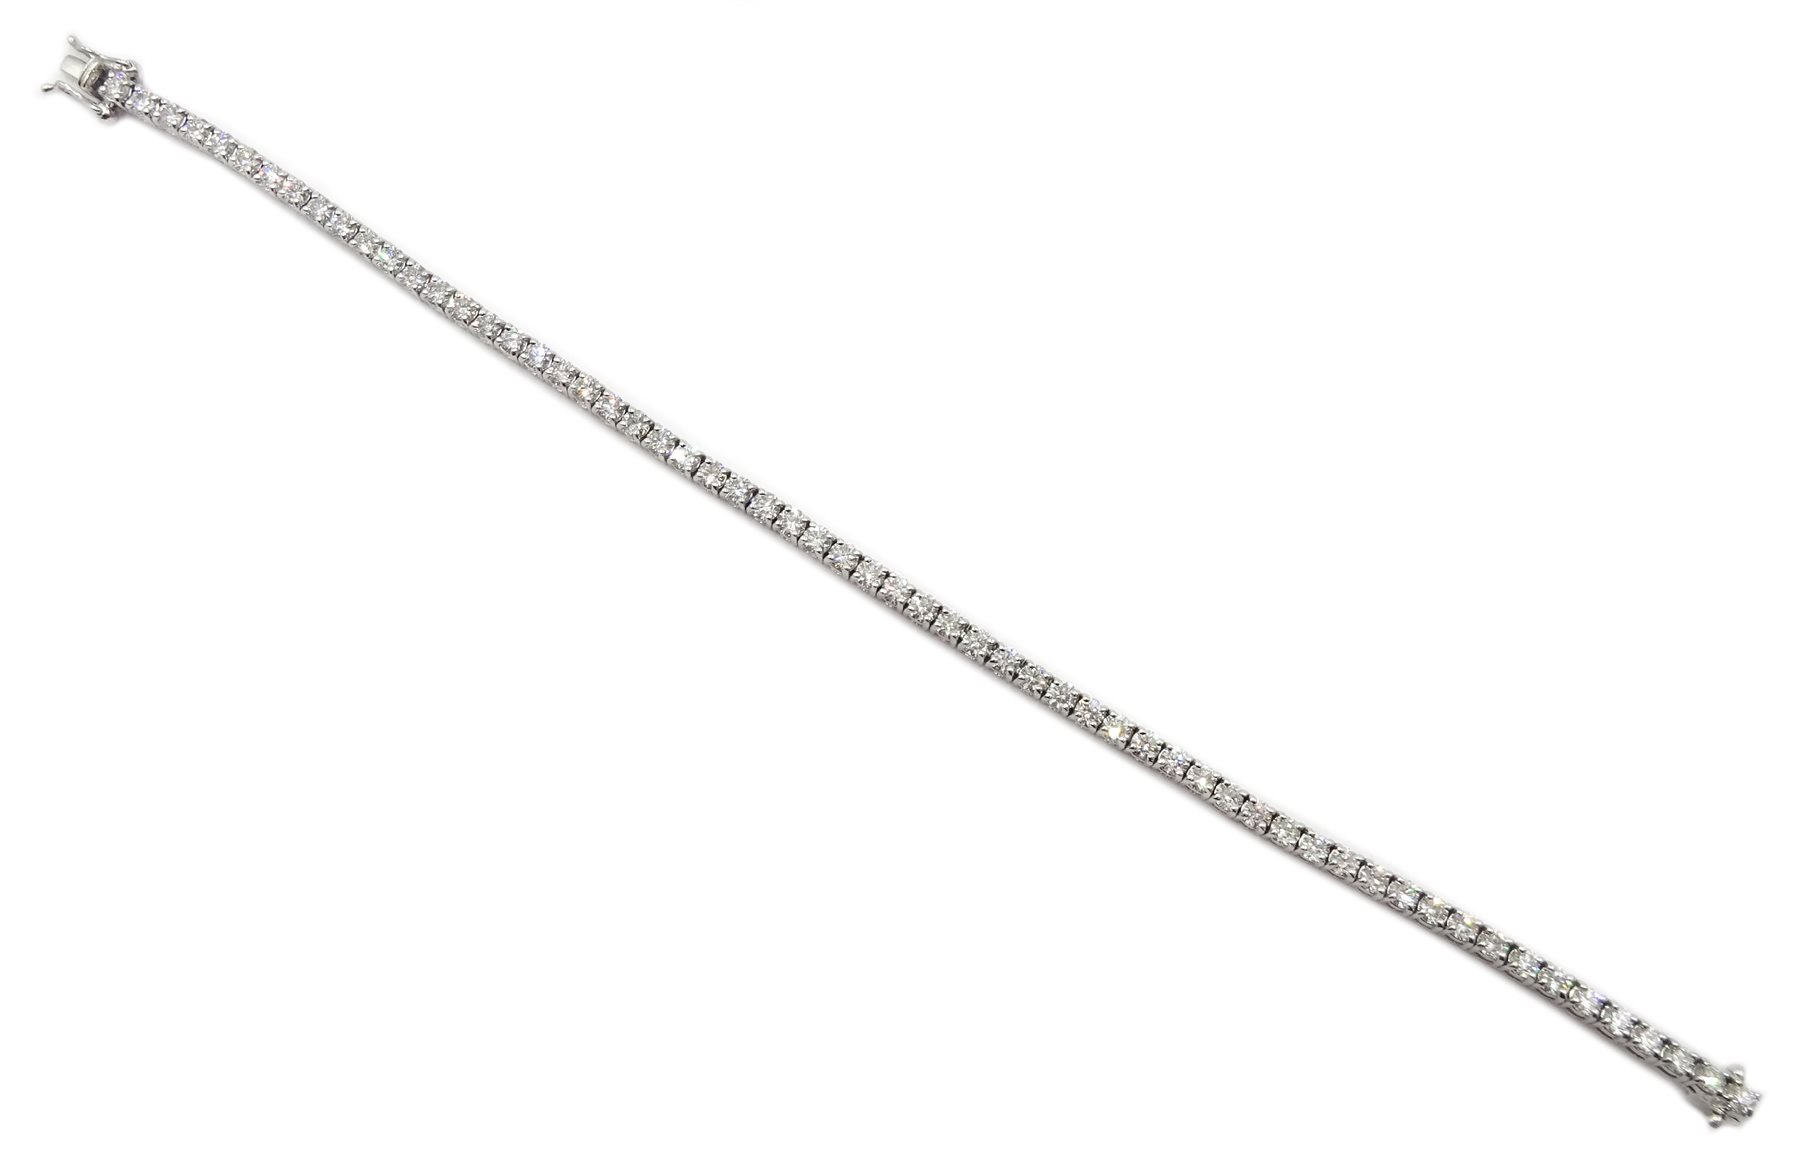 18ct white gold diamond line bracelet, stamped 750 diamond total weight approx 5.18 carat, free UK - Image 3 of 5